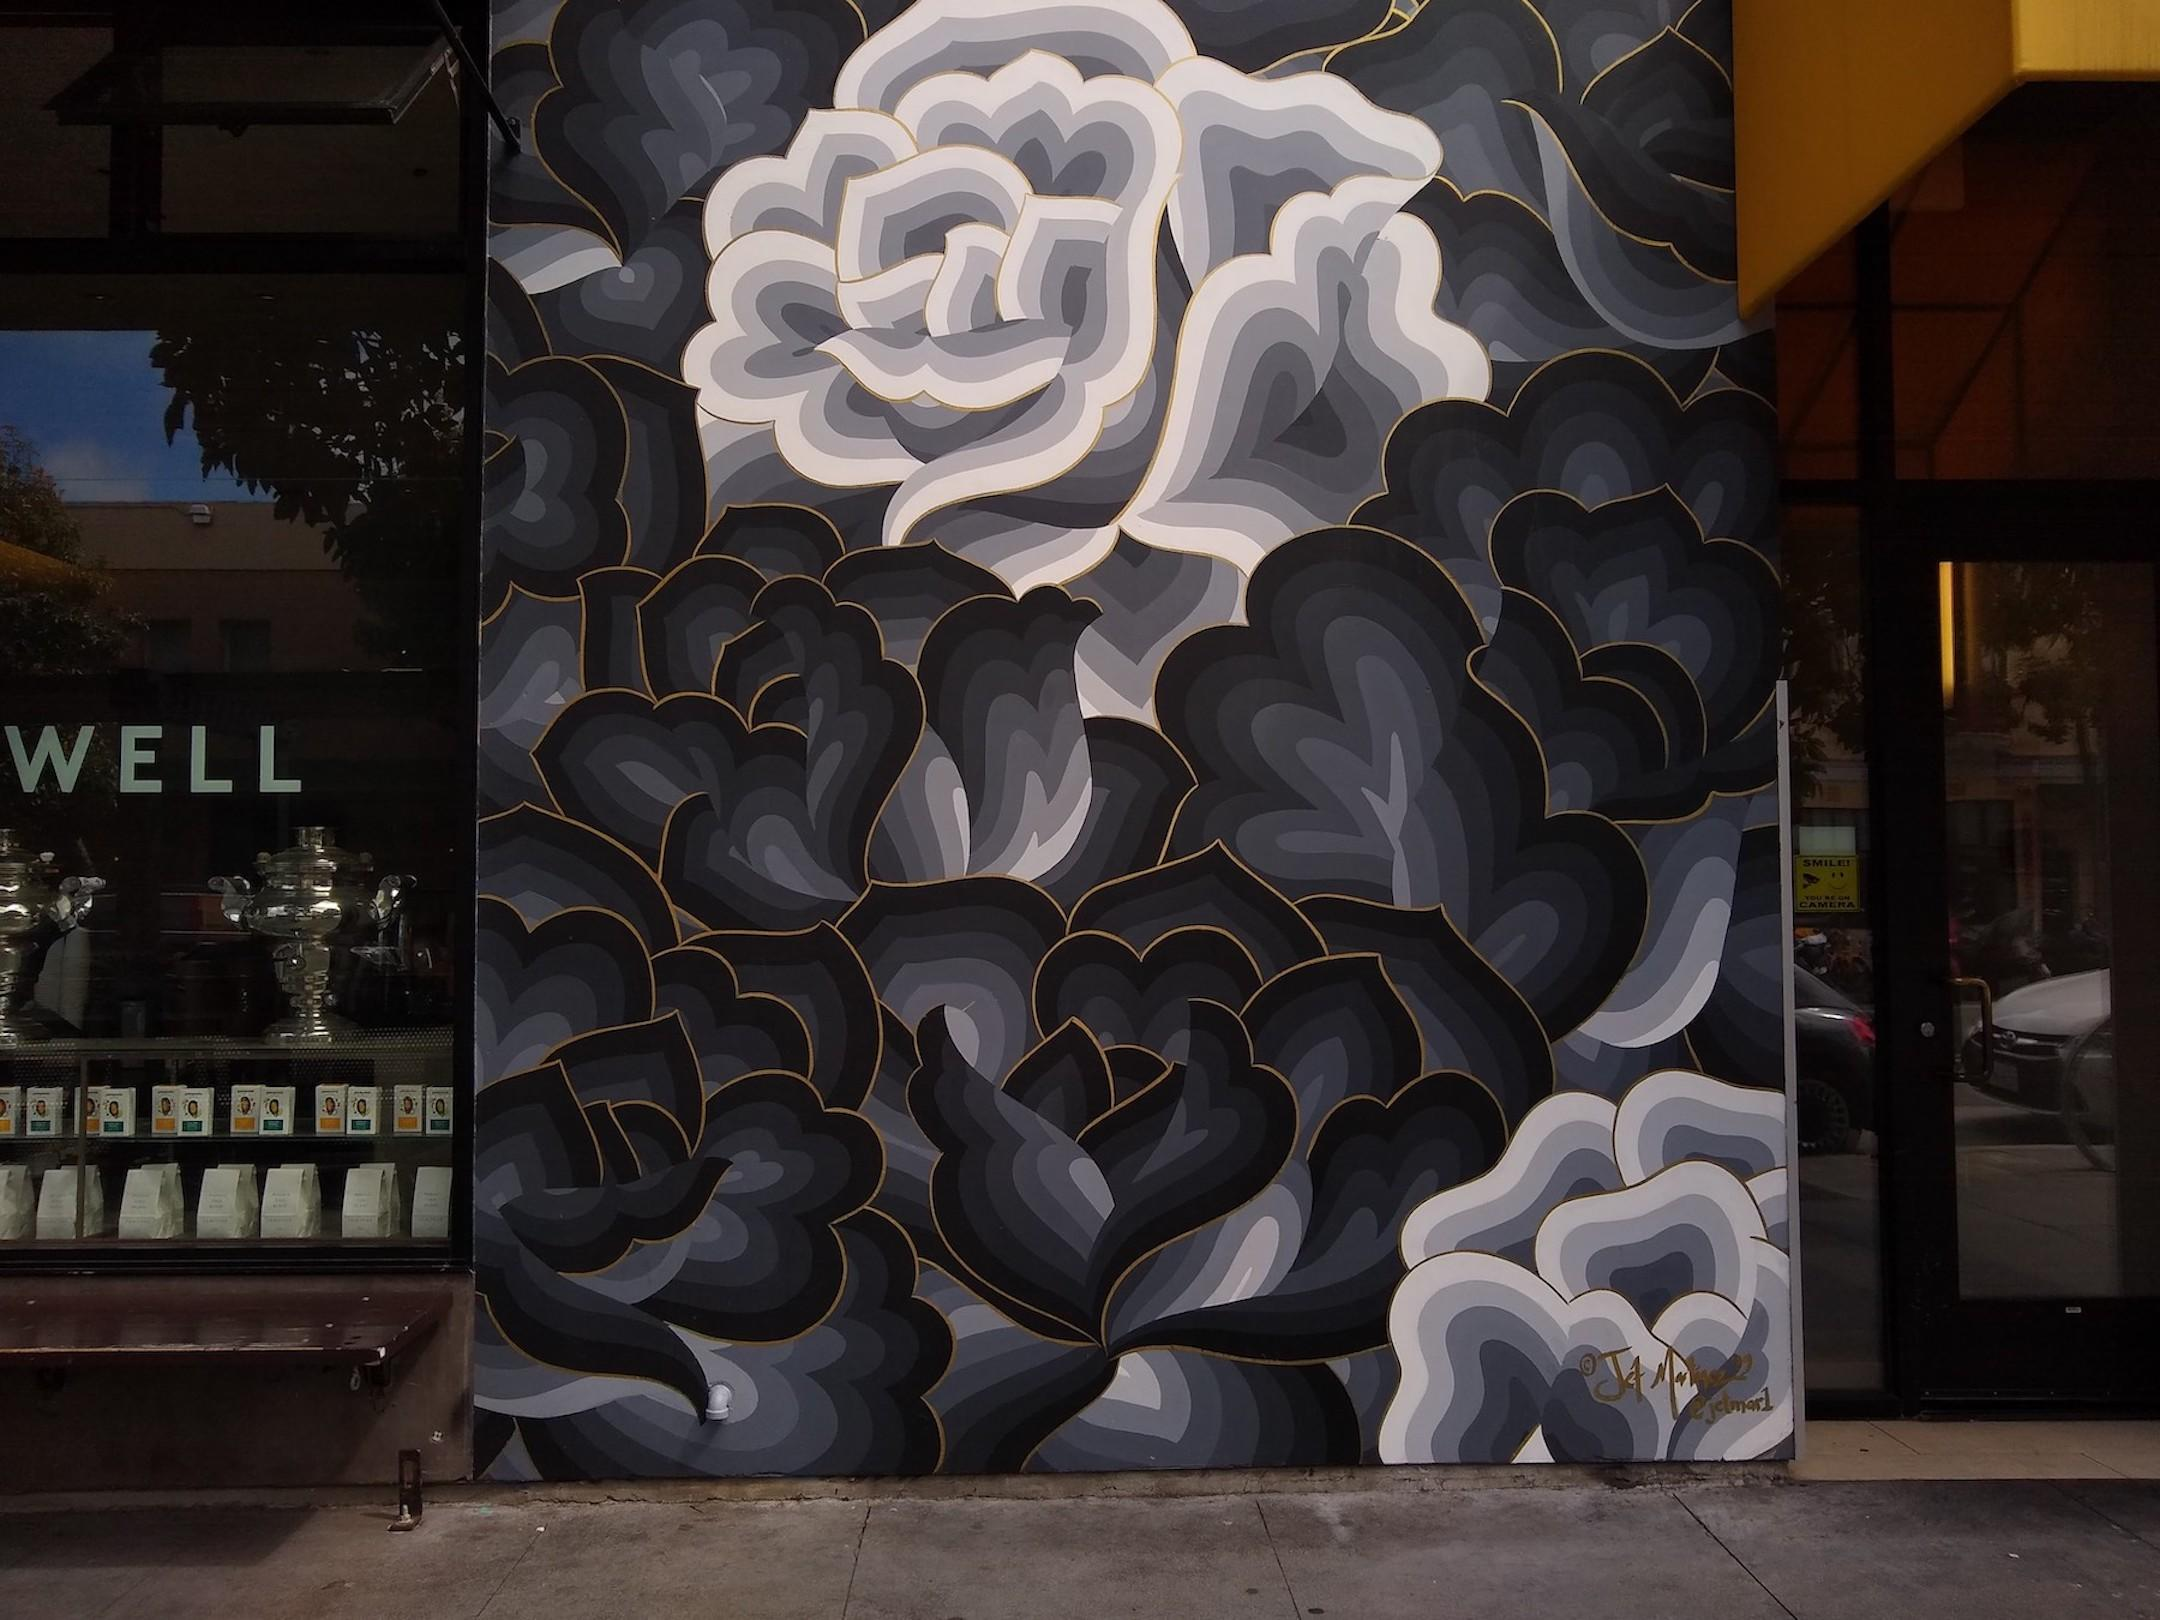 small-good-phot-bandw-mural